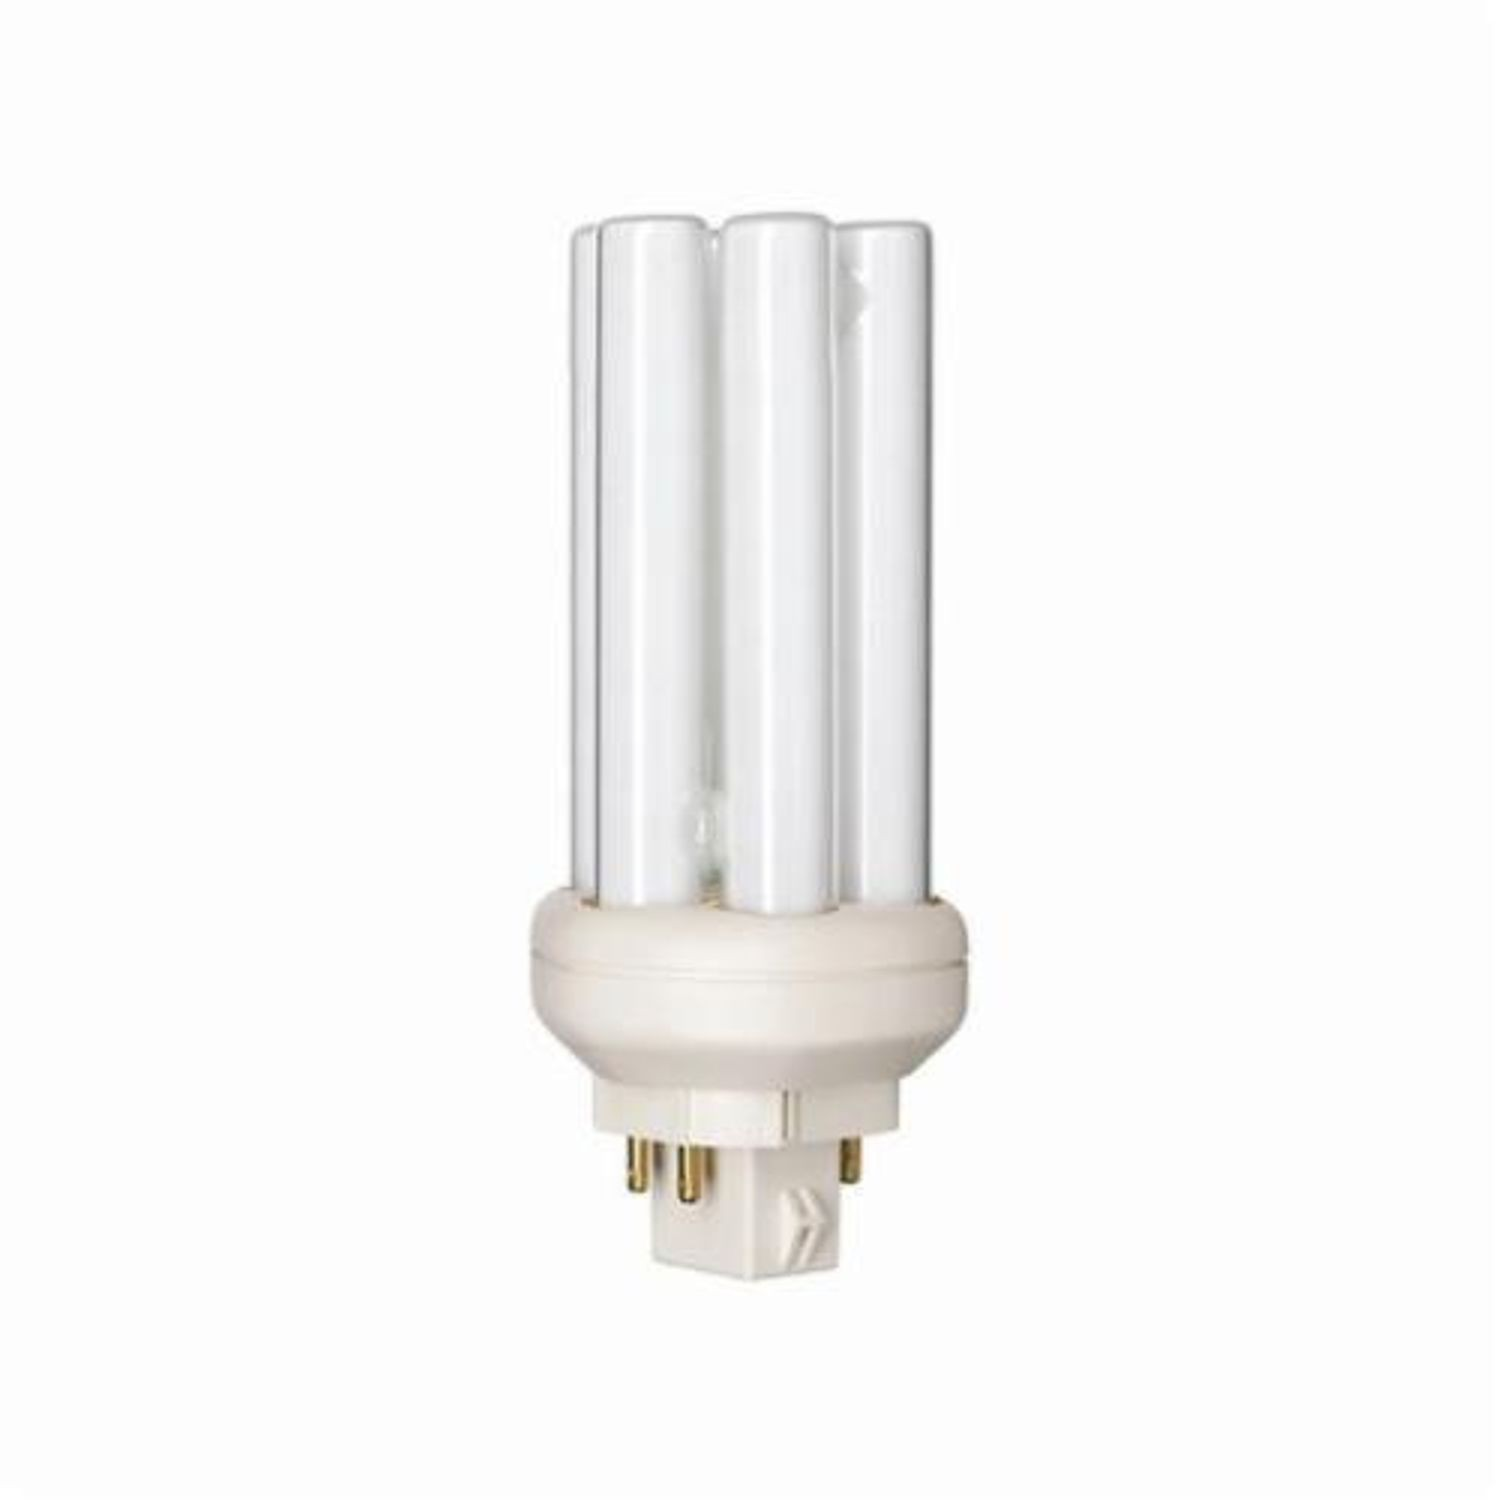 Philips Lighting Philips Lighting 458281 Triple Compact Fluorescent Lamp 32 W Gx24q 3 Cfl Lamp Pl T 2250 Lumens